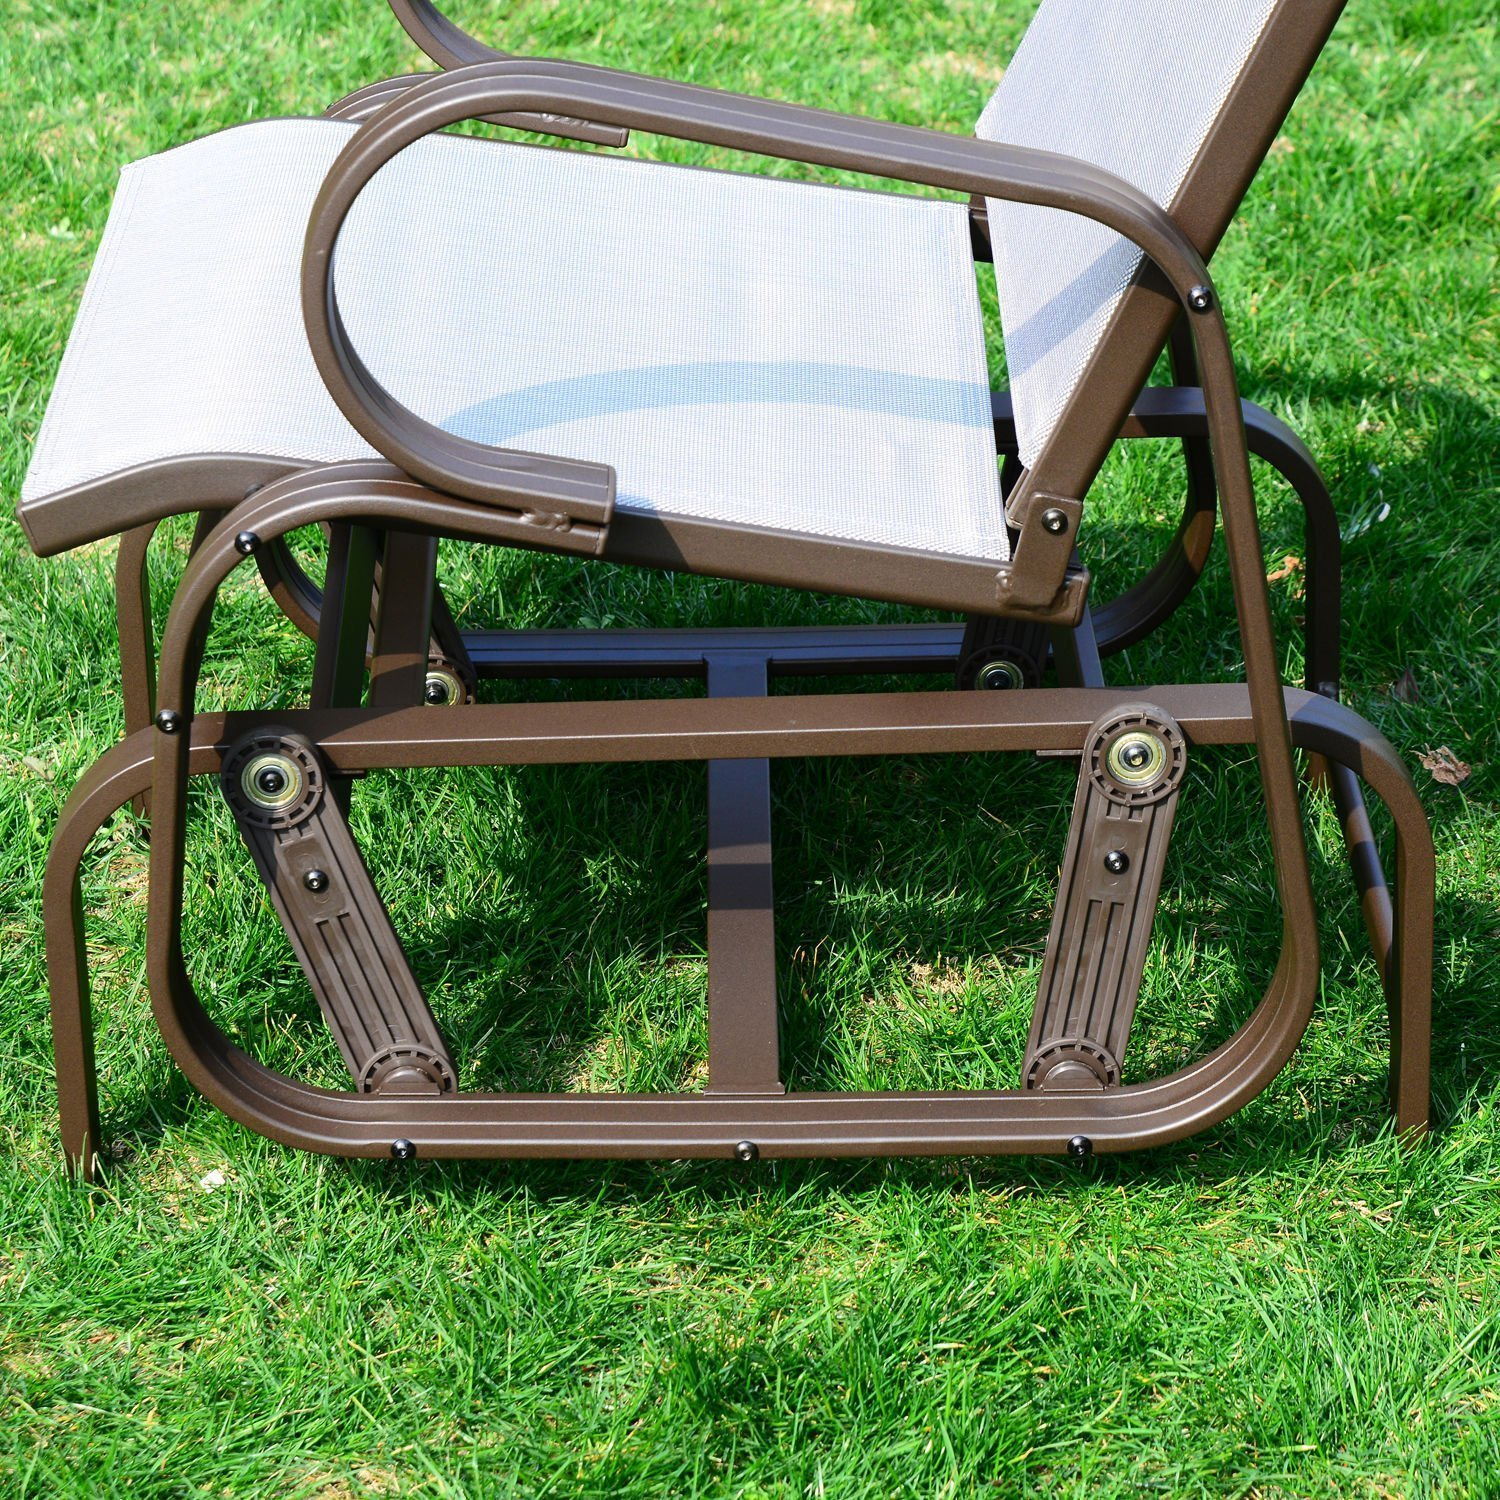 Amazon.com : Outsunny Outdoor Mesh Fabric Patio Glider Chair   Brown And  Beige : Garden U0026 Outdoor